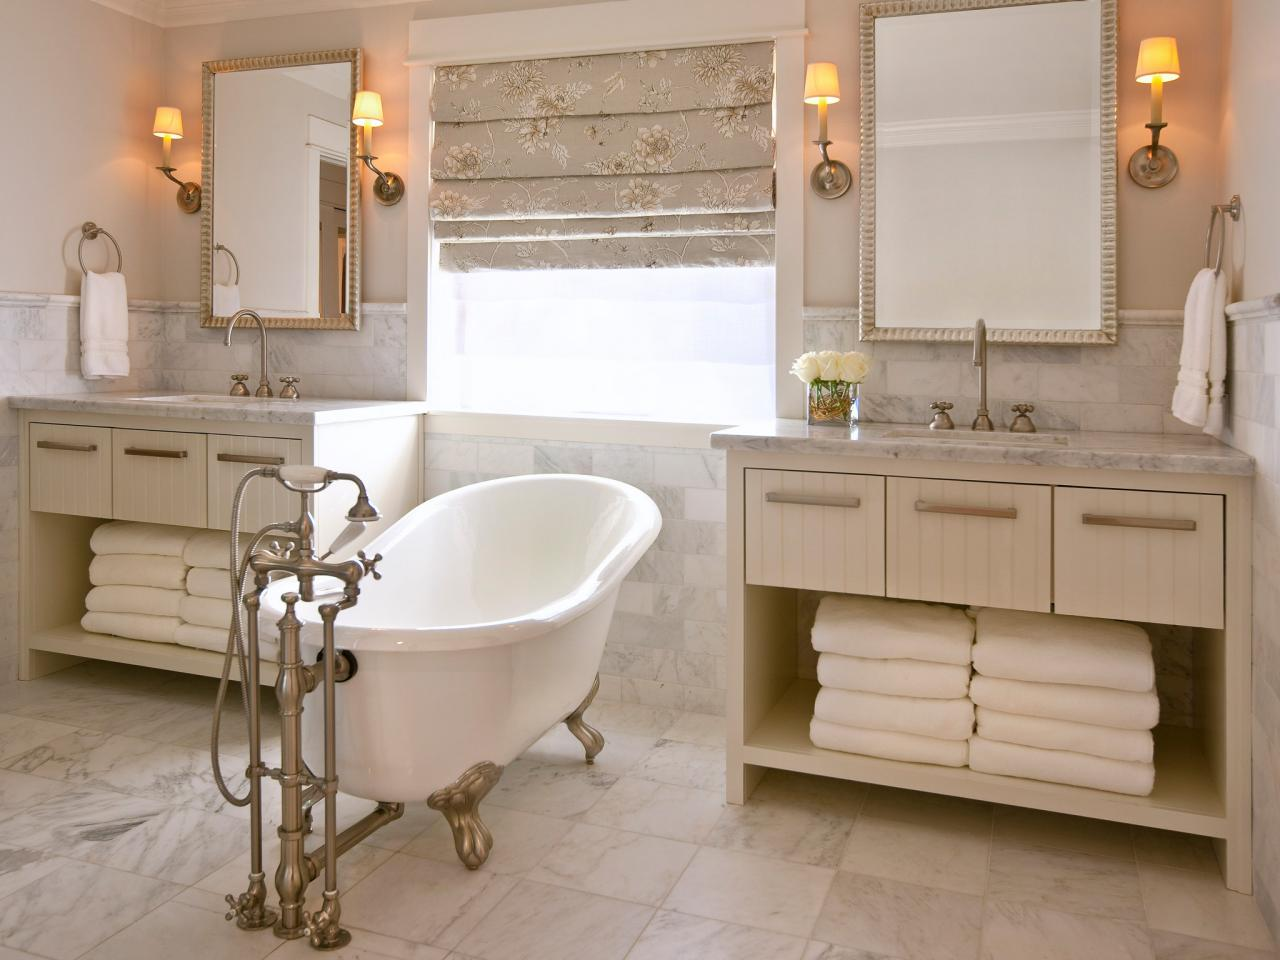 Traditional Cream Bathroom With Claw-Foot Tub